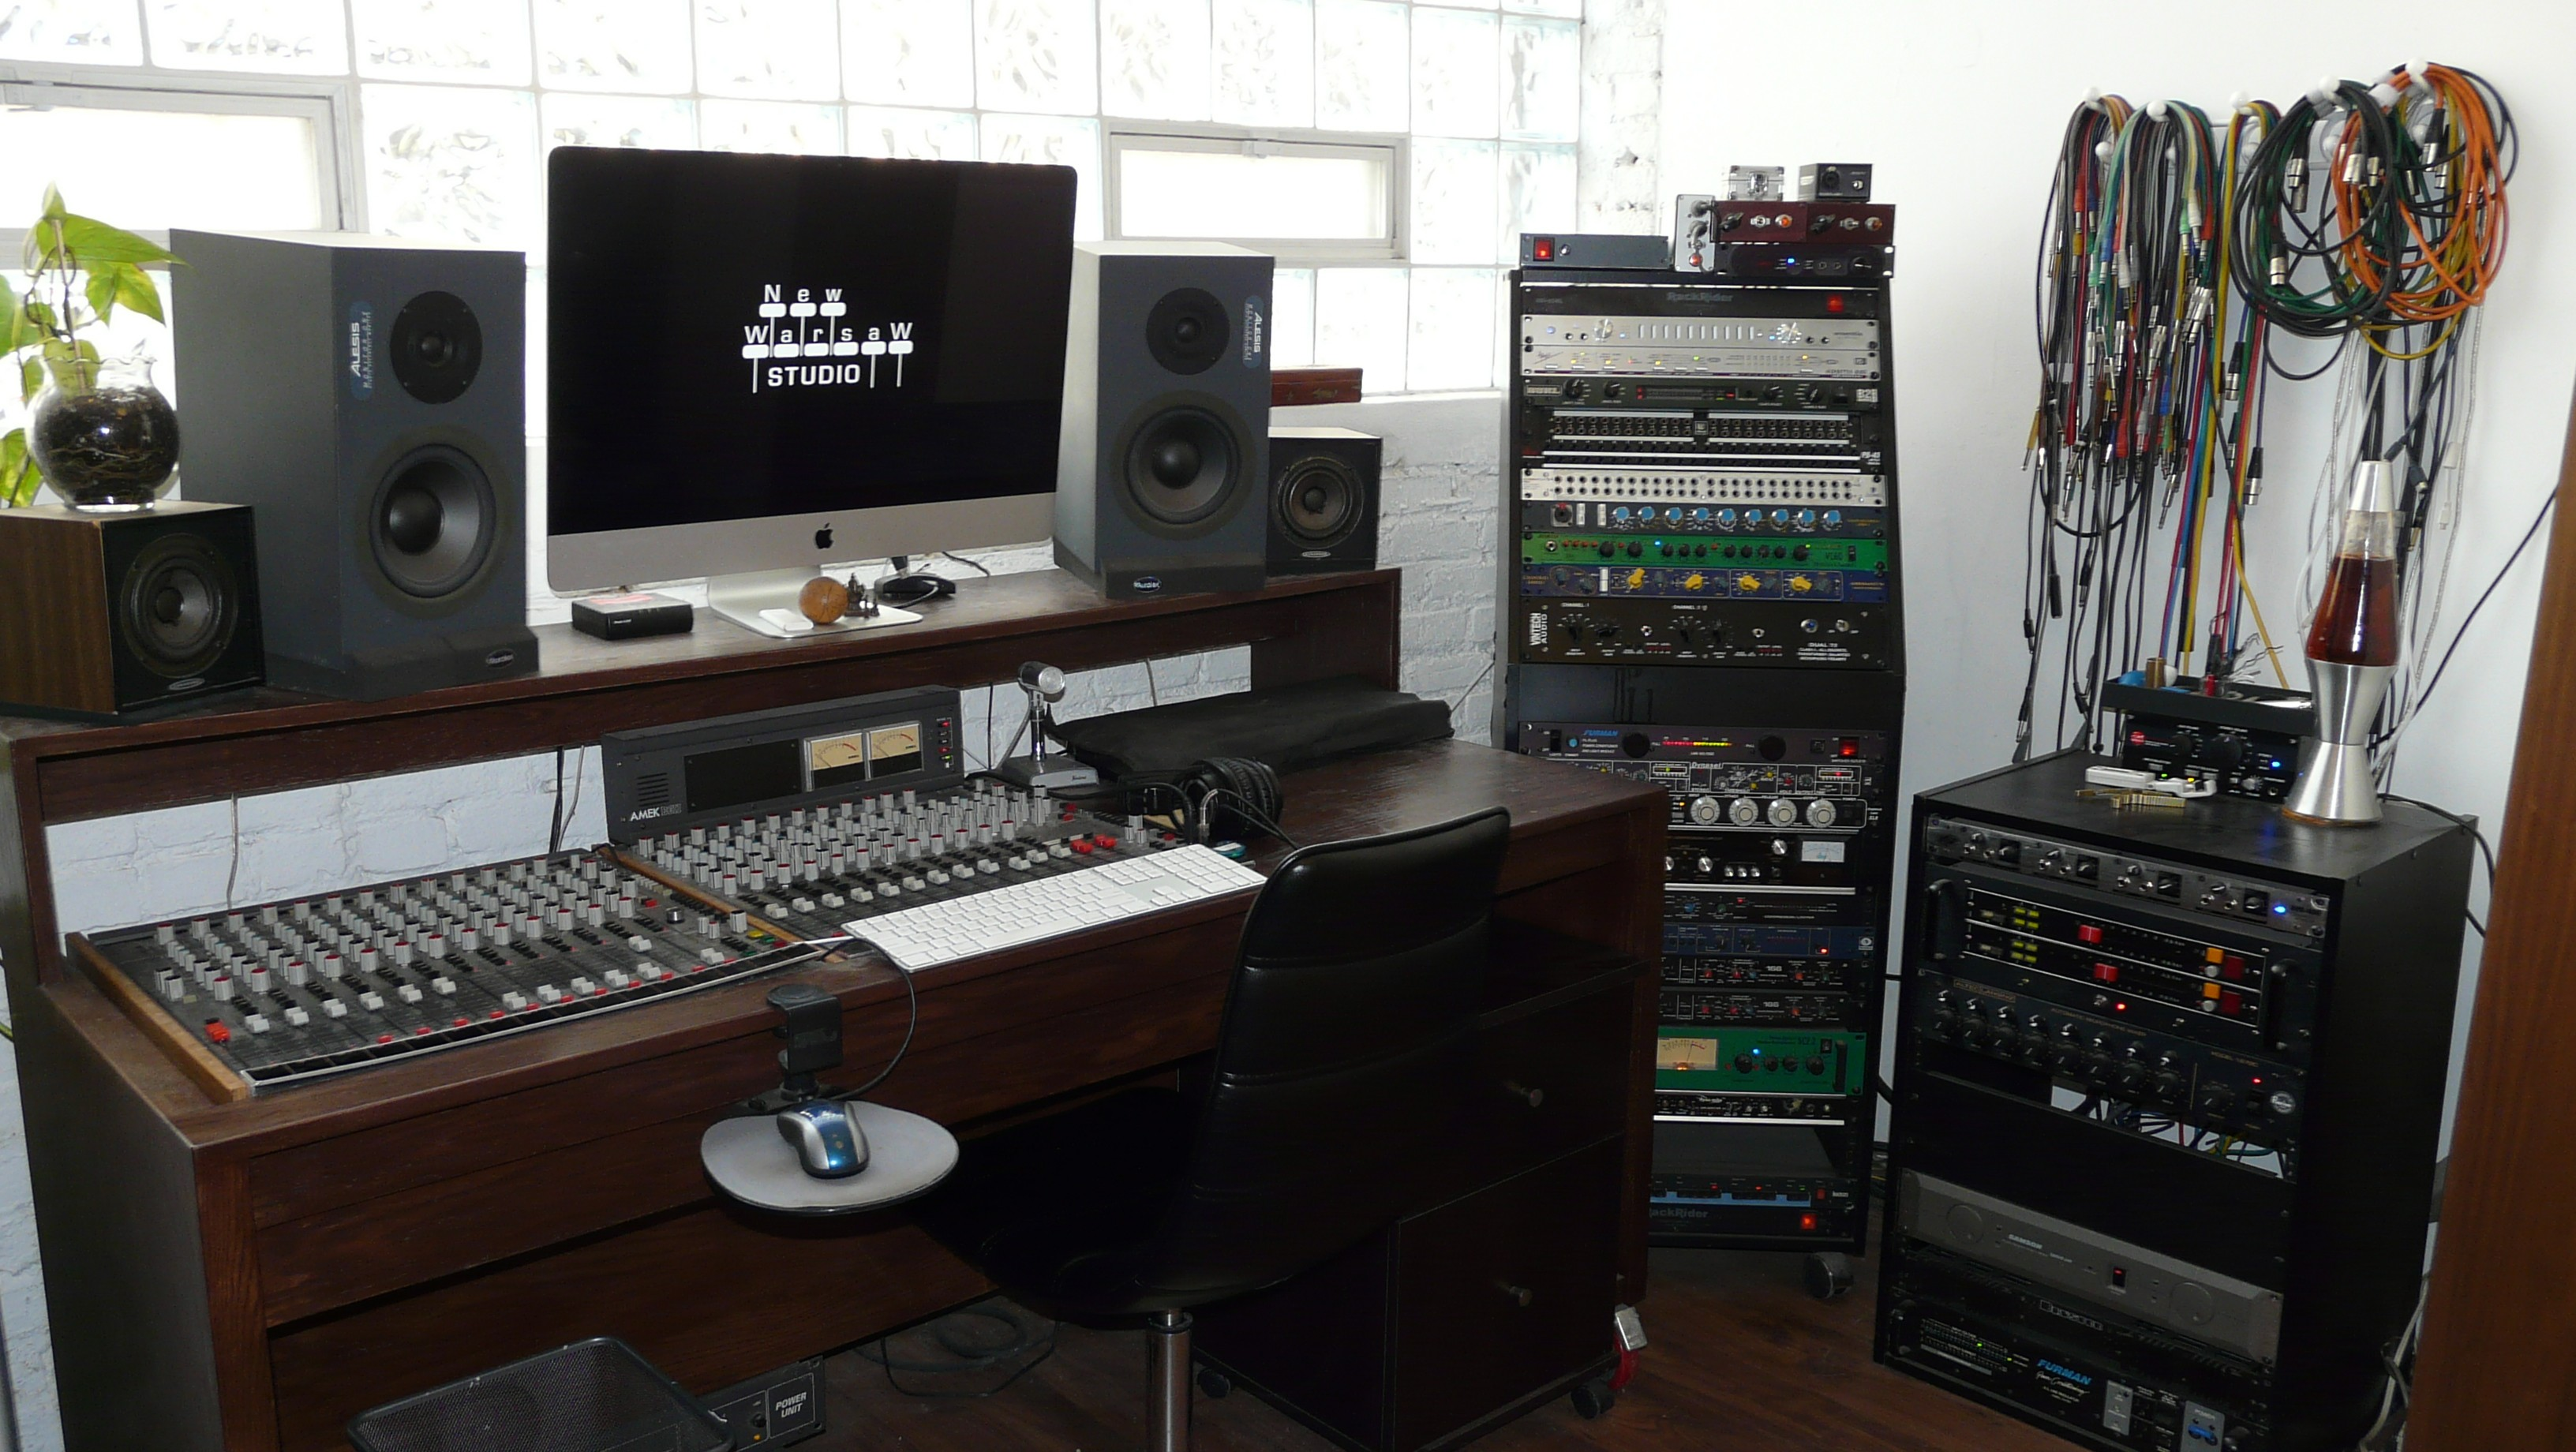 Mixer and Racks